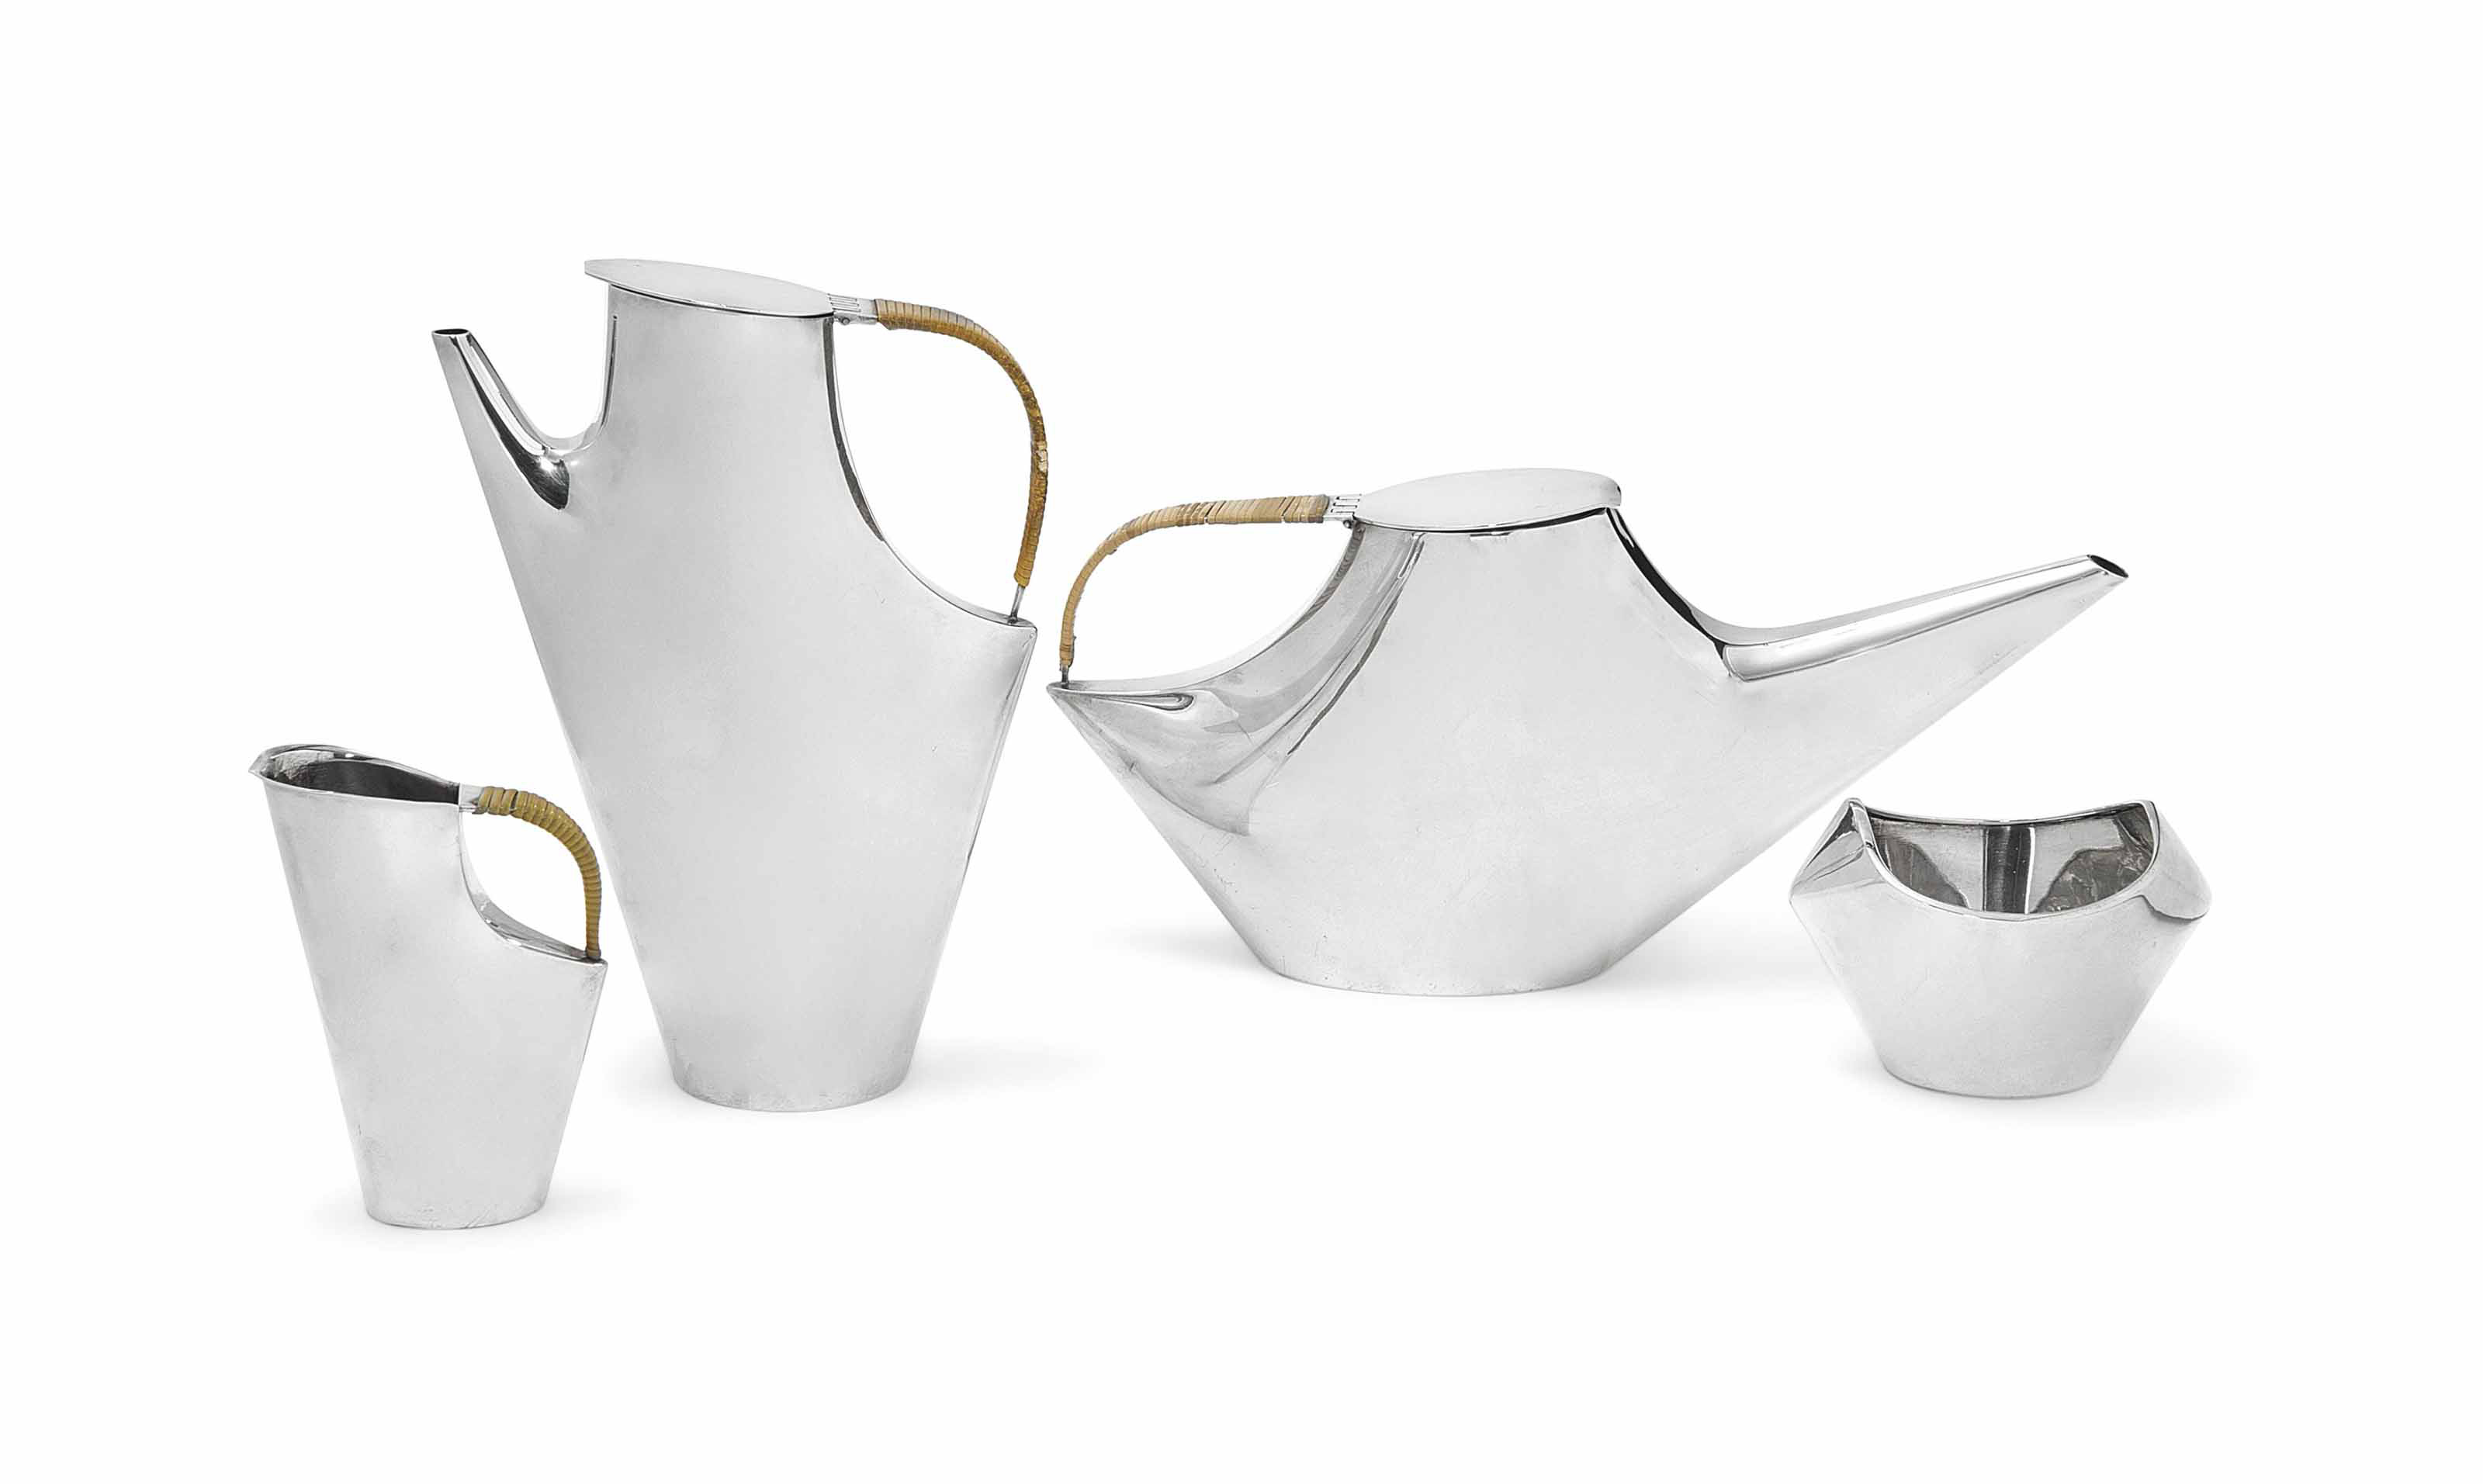 A LINO SABATTINI (B.1925) SILVER PLATED 'COMO' TEA AND COFFEE SET MADE BY CHRISTOFLE